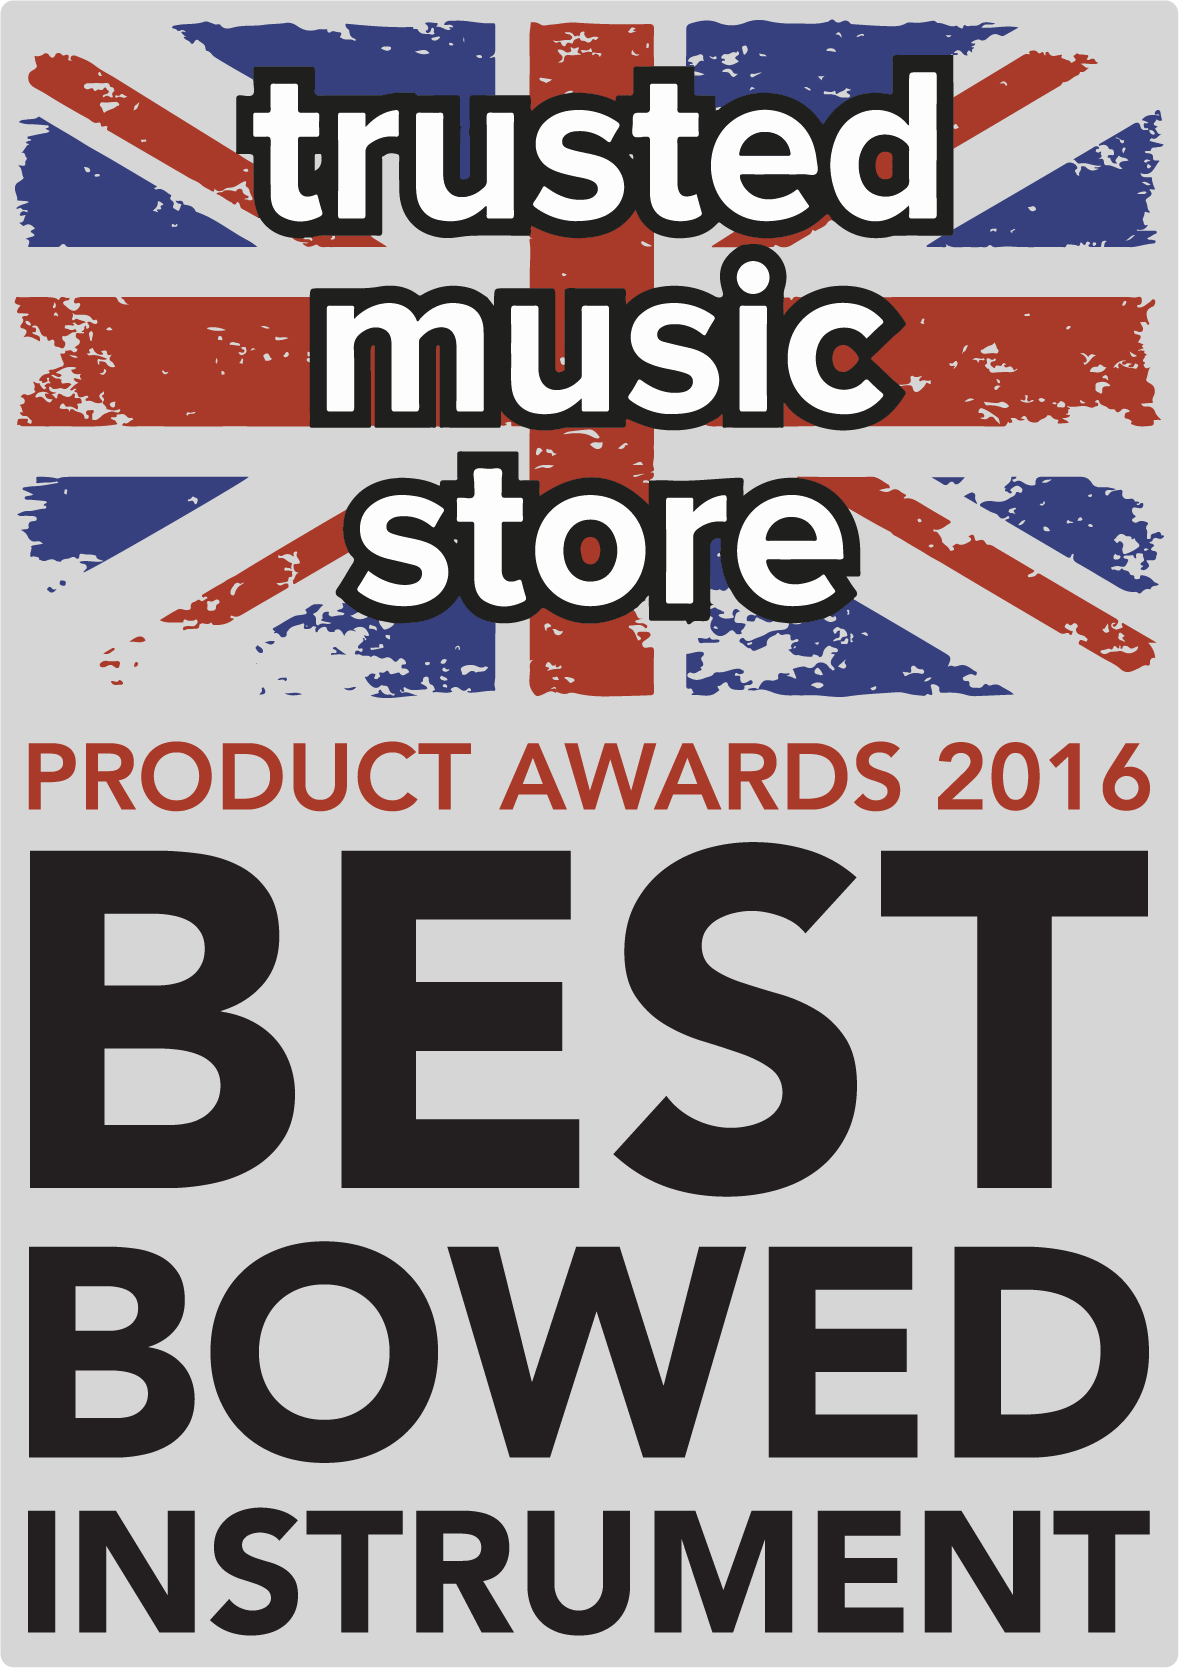 Trusted Music Store Award for Best Bowed Instrument